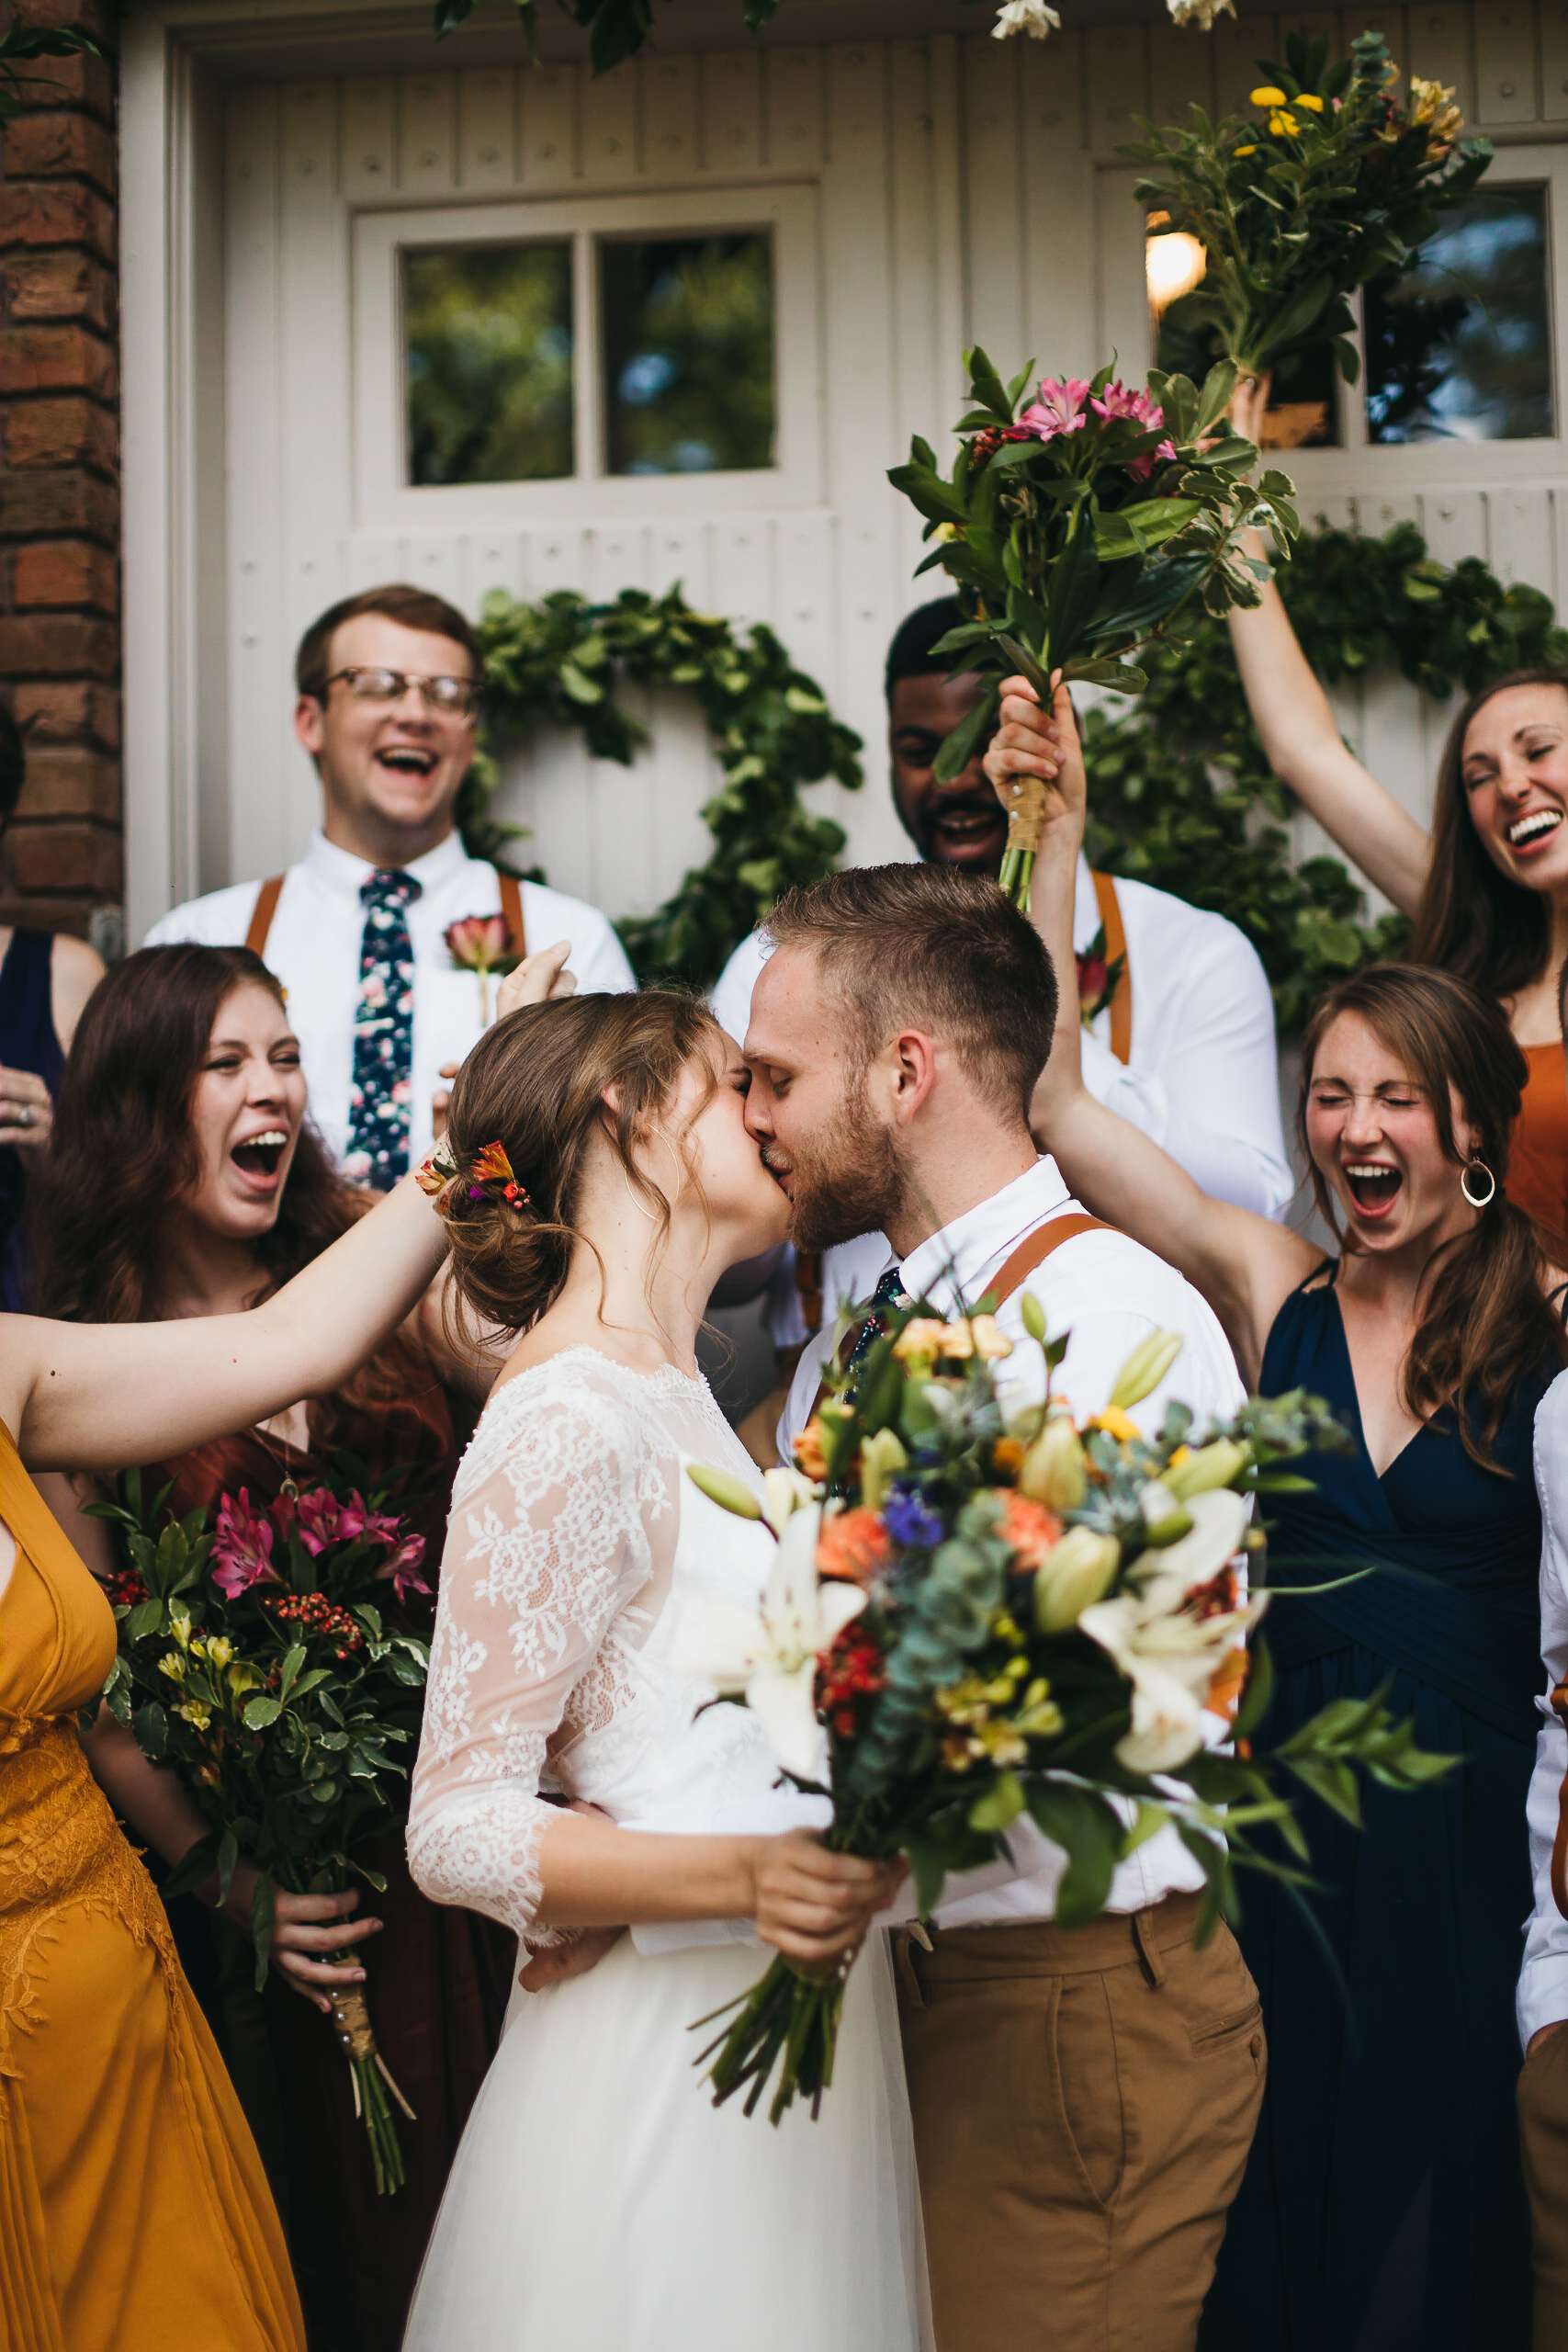 Arkansas Wedding Photographer: Bride and groom kiss while bridal party cheers